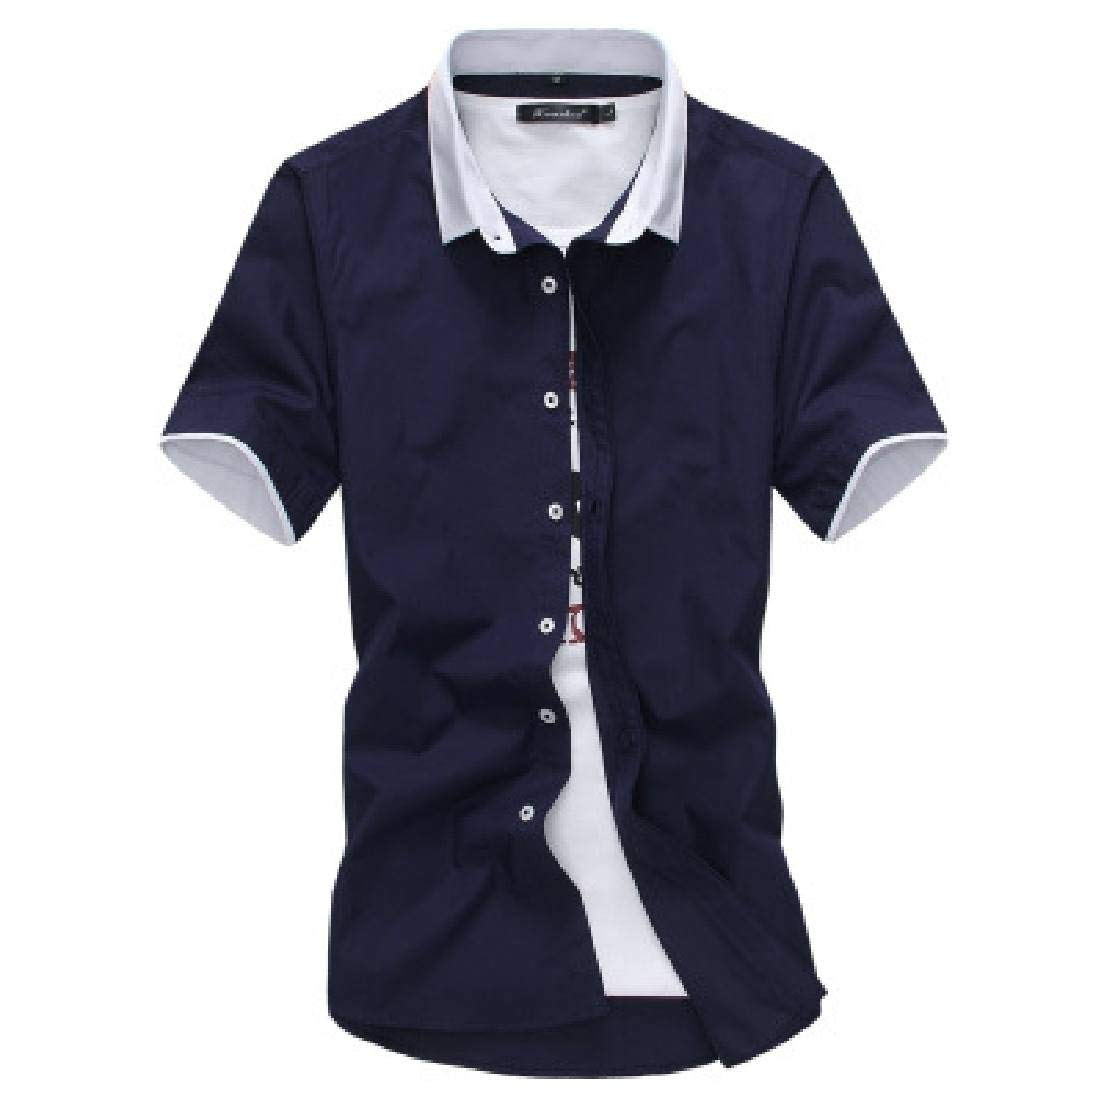 Abeaicoc Men Slim Color Block Short Sleeve Casual Button Front Shirt